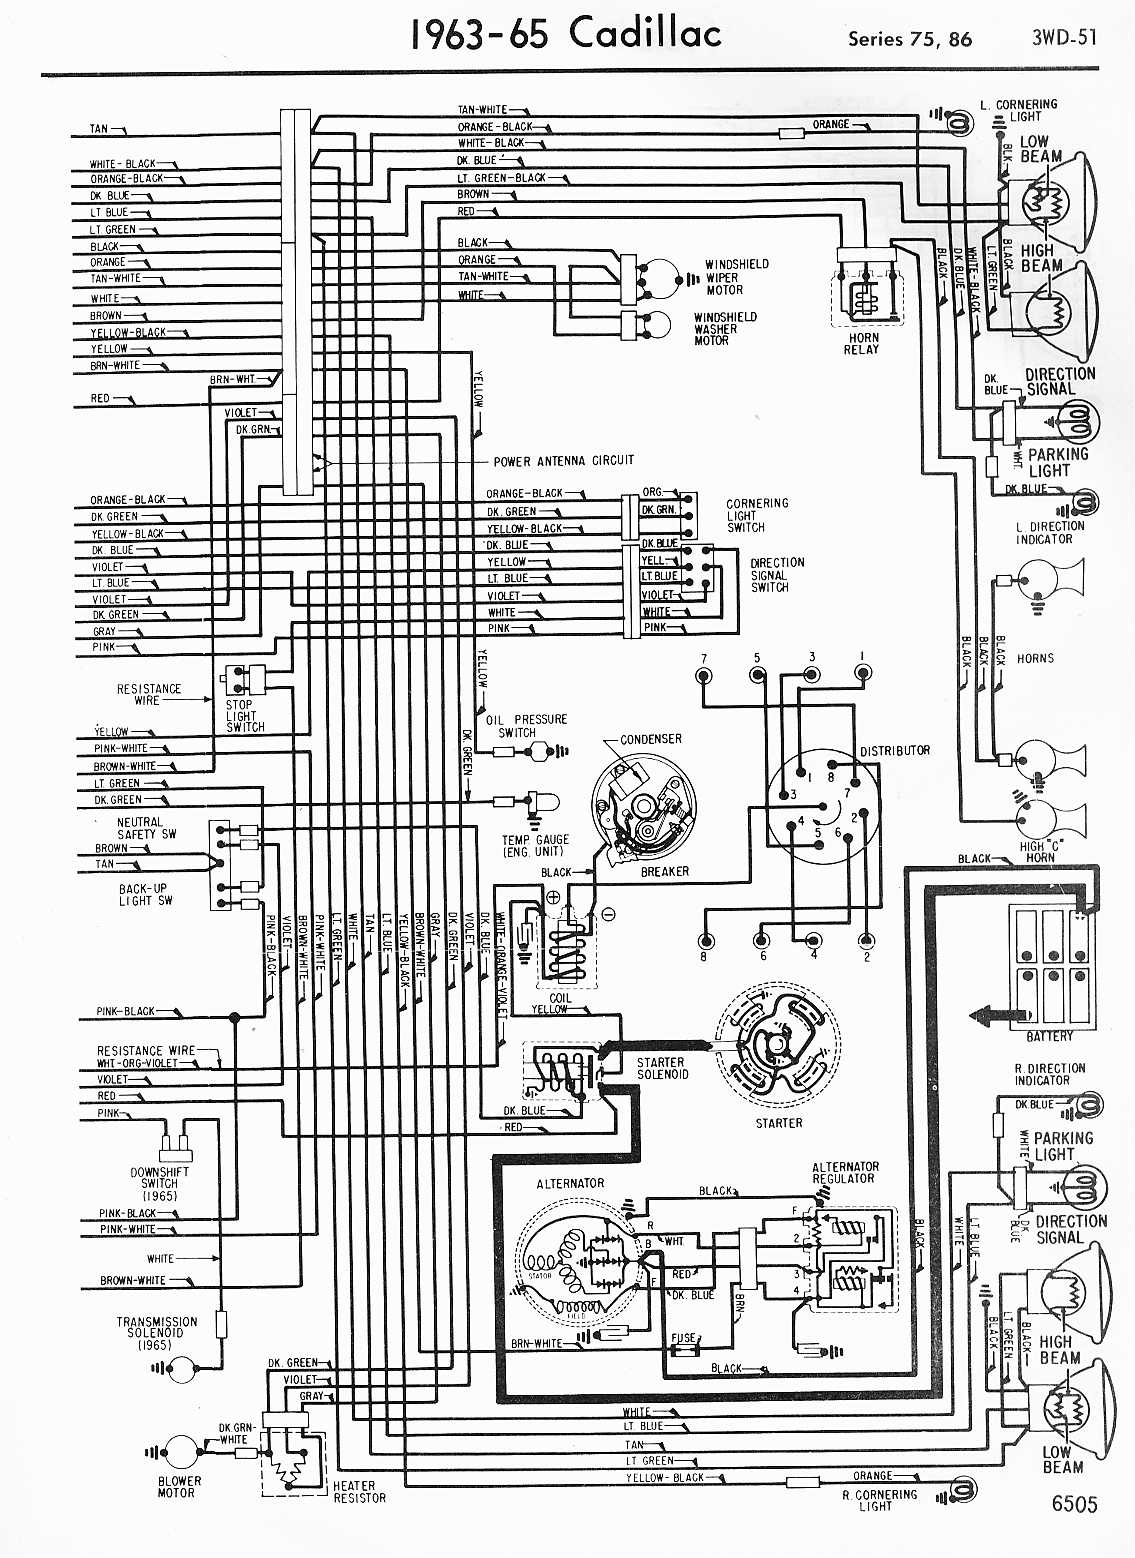 MWireCadi65_3WD 051 cadillac wiring harness ram truck wiring harness \u2022 wiring diagrams  at panicattacktreatment.co